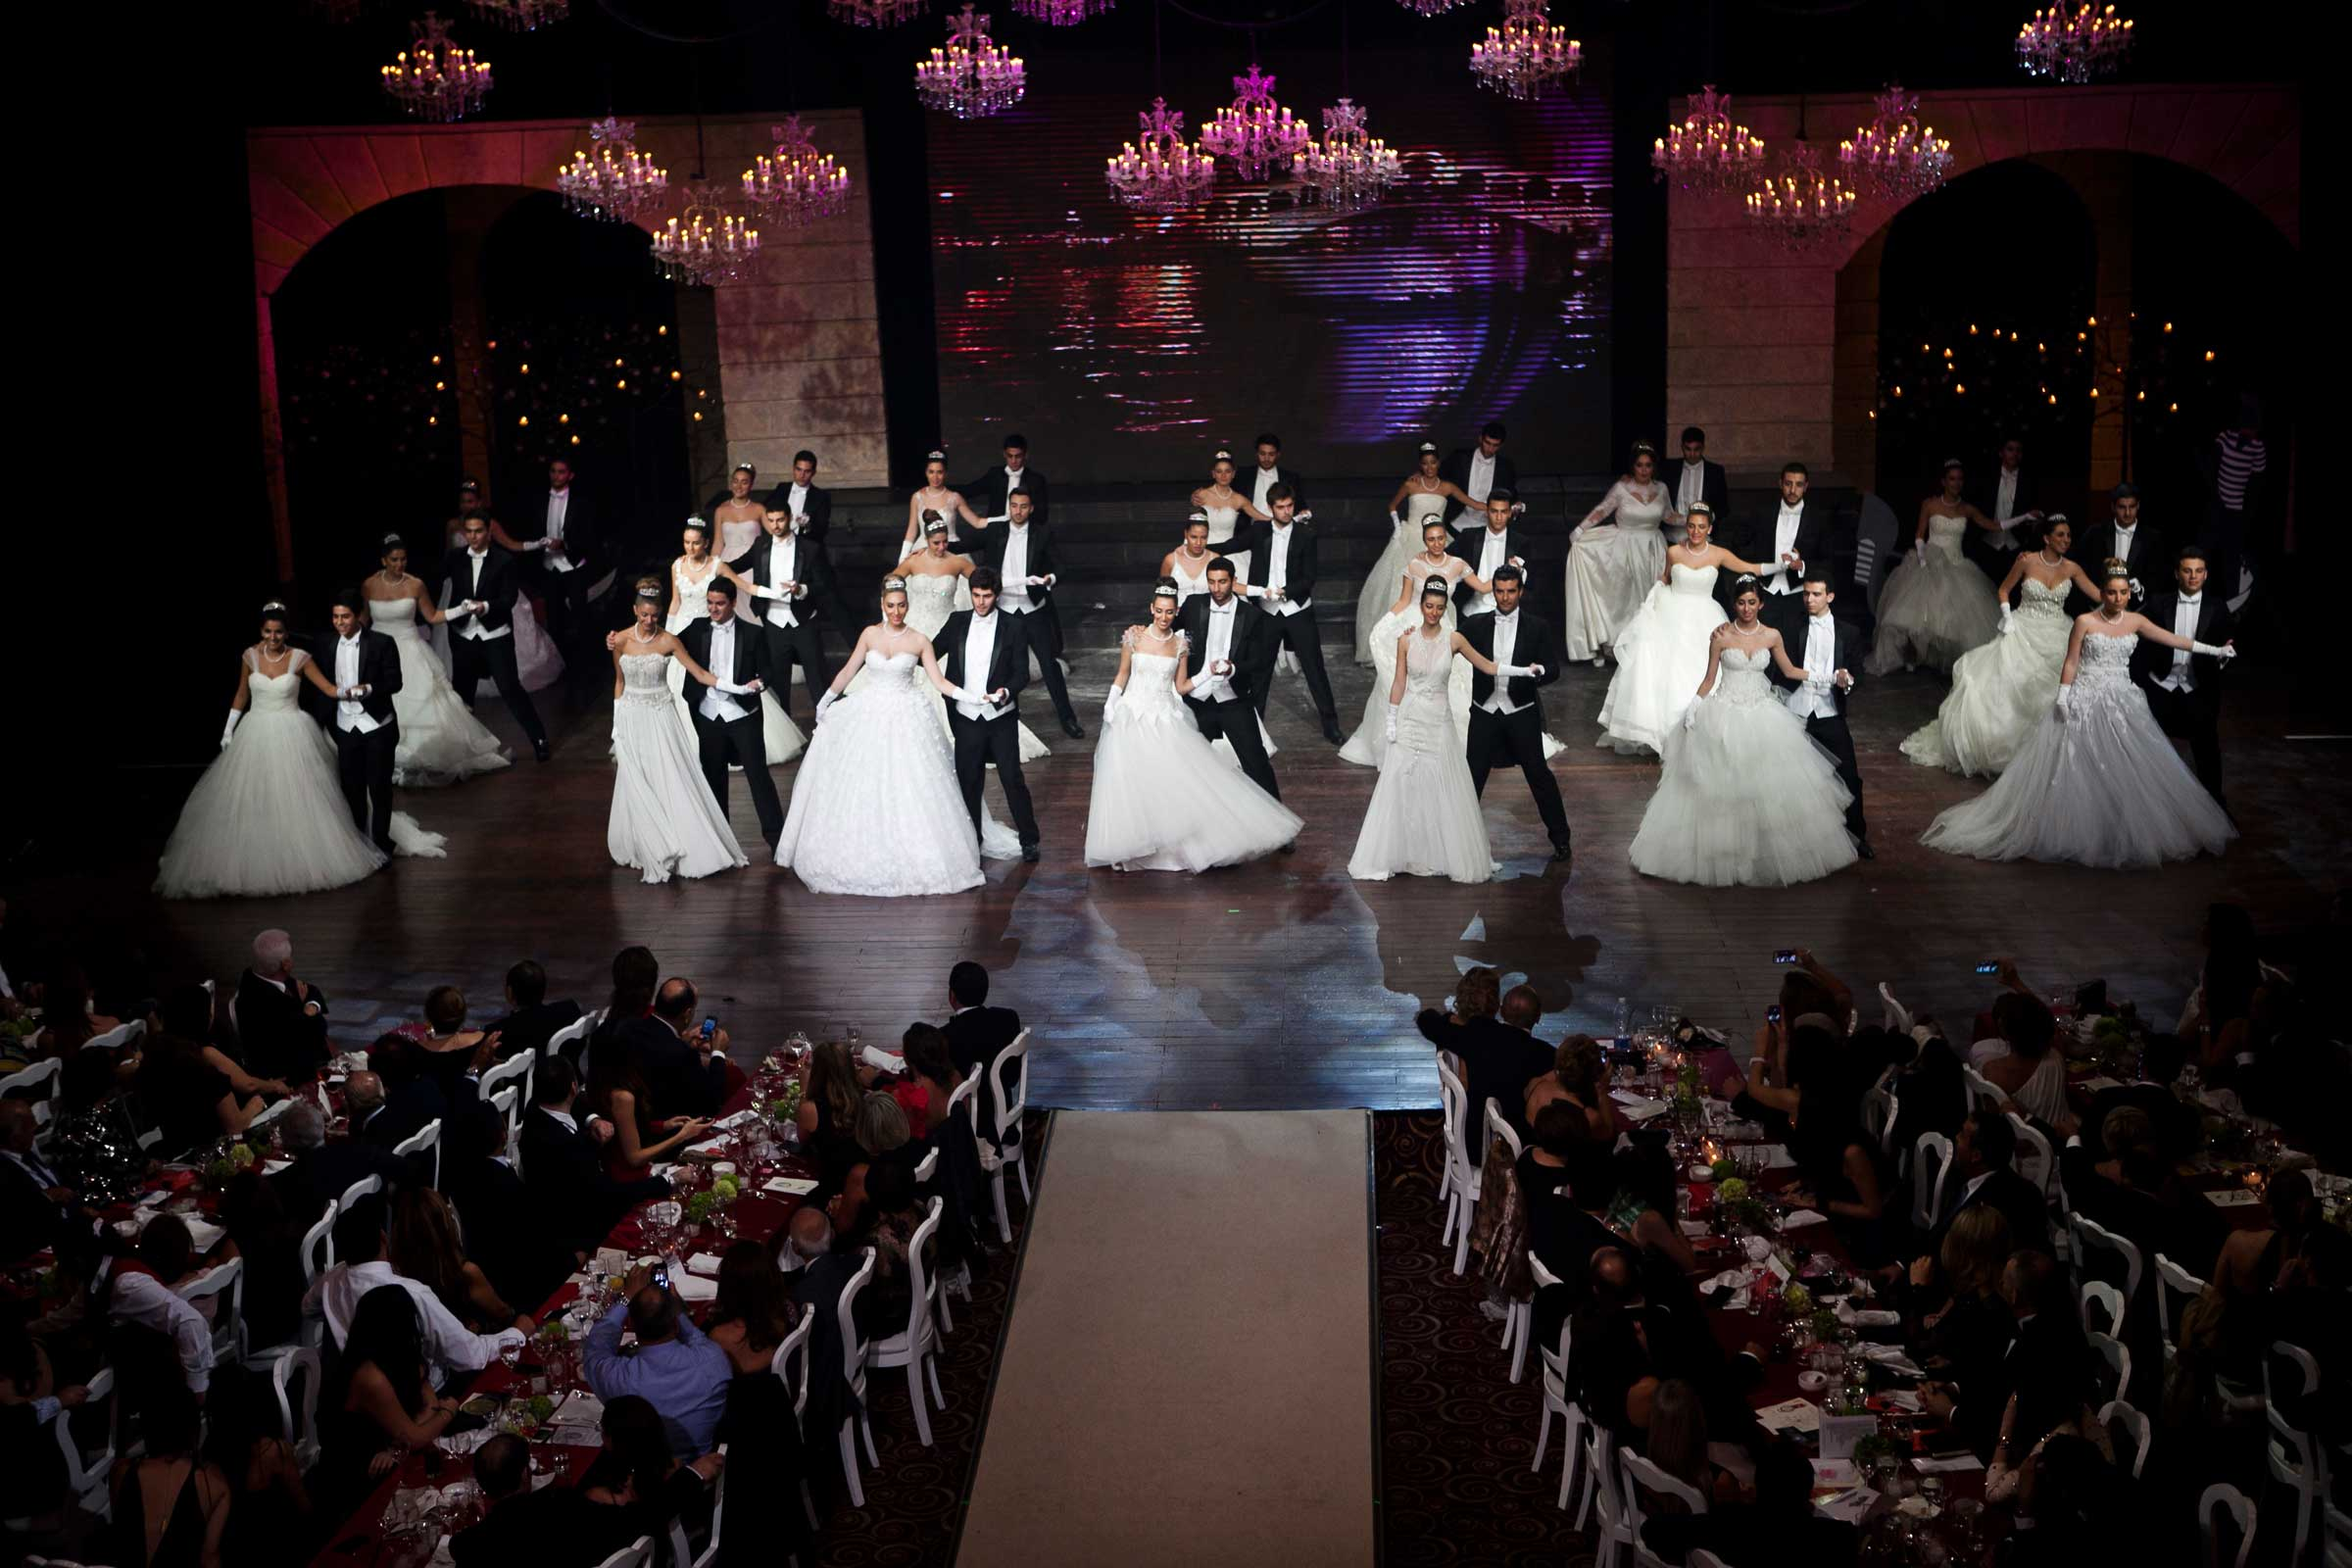 Debutante ladies dance with their partner at the Debutante Ball infront of an audience of 600 people, tickets for the Ball ranged from $150 or $200.